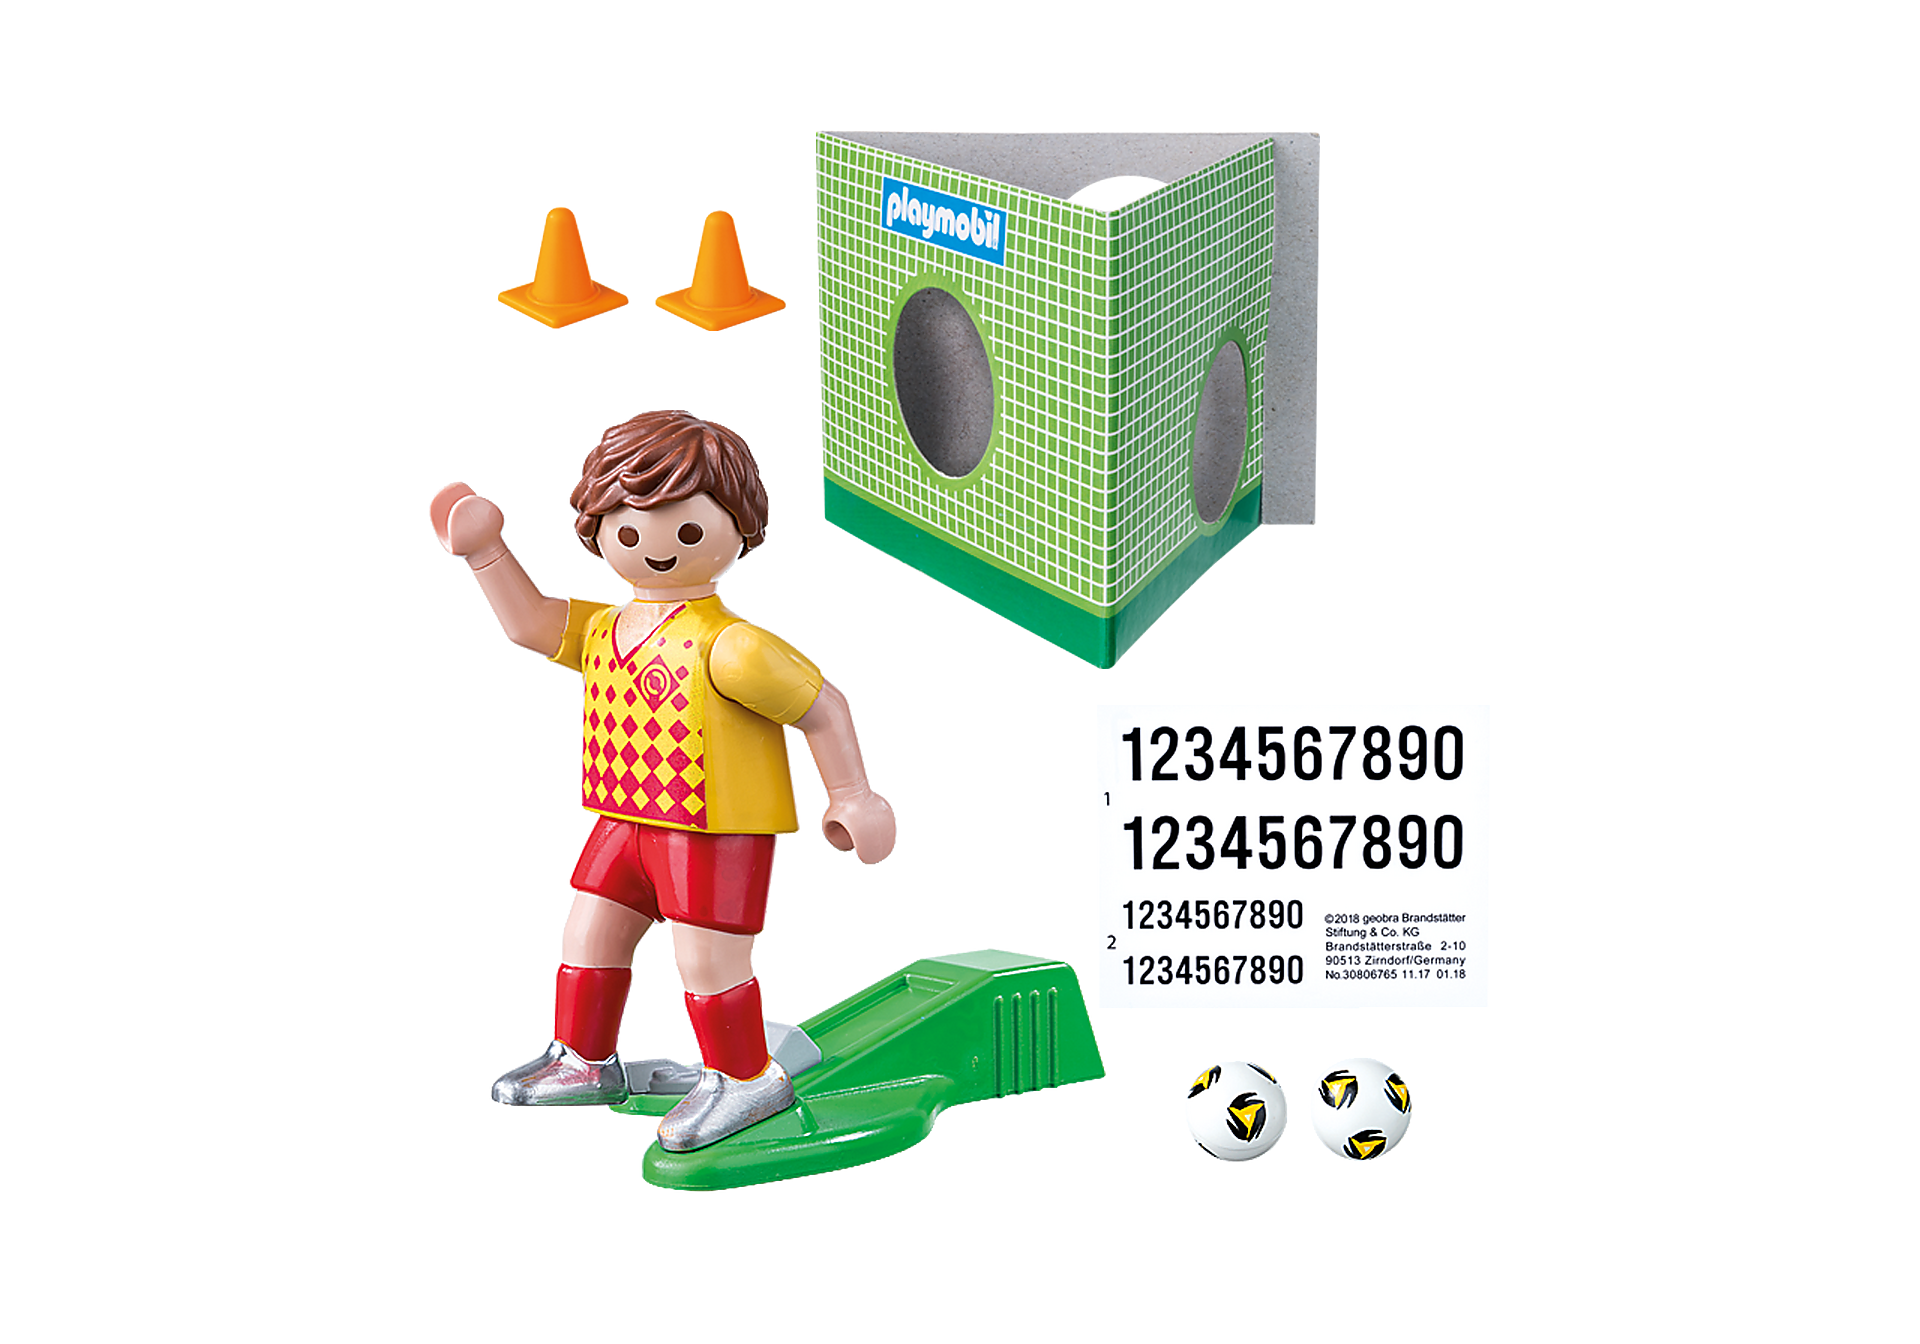 70157 Soccer Player with Goal zoom image3